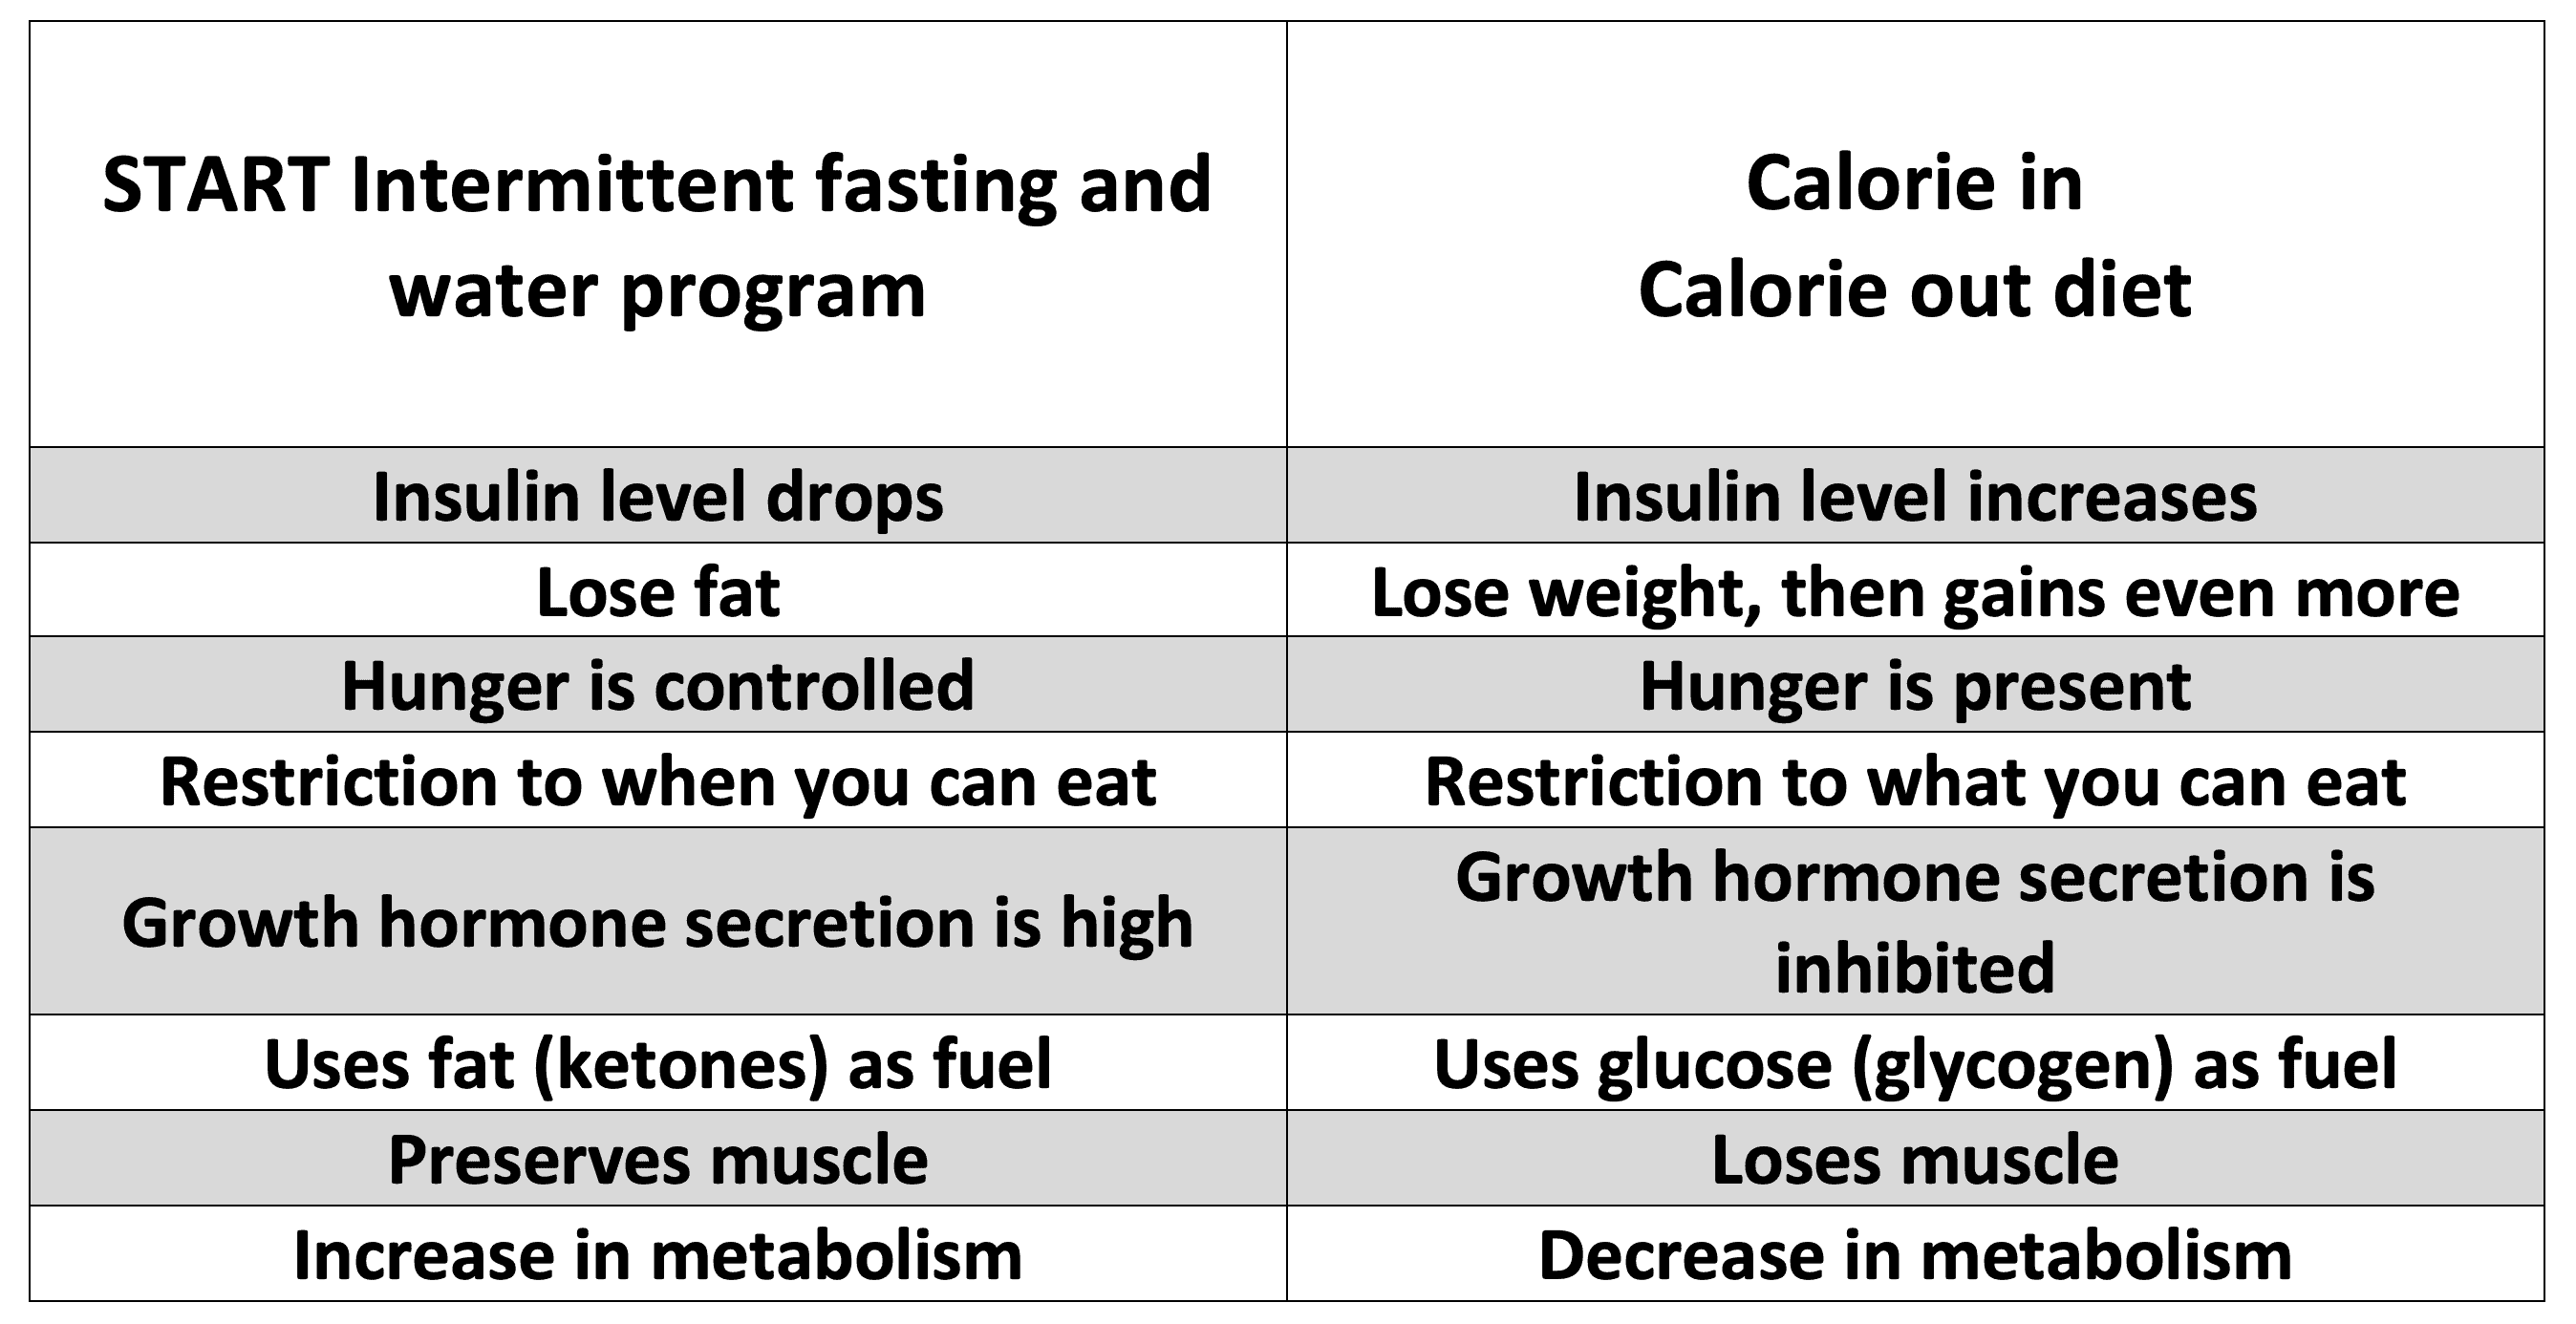 START Wellness Intermittent Fasting vs Calorie in Calorie Out